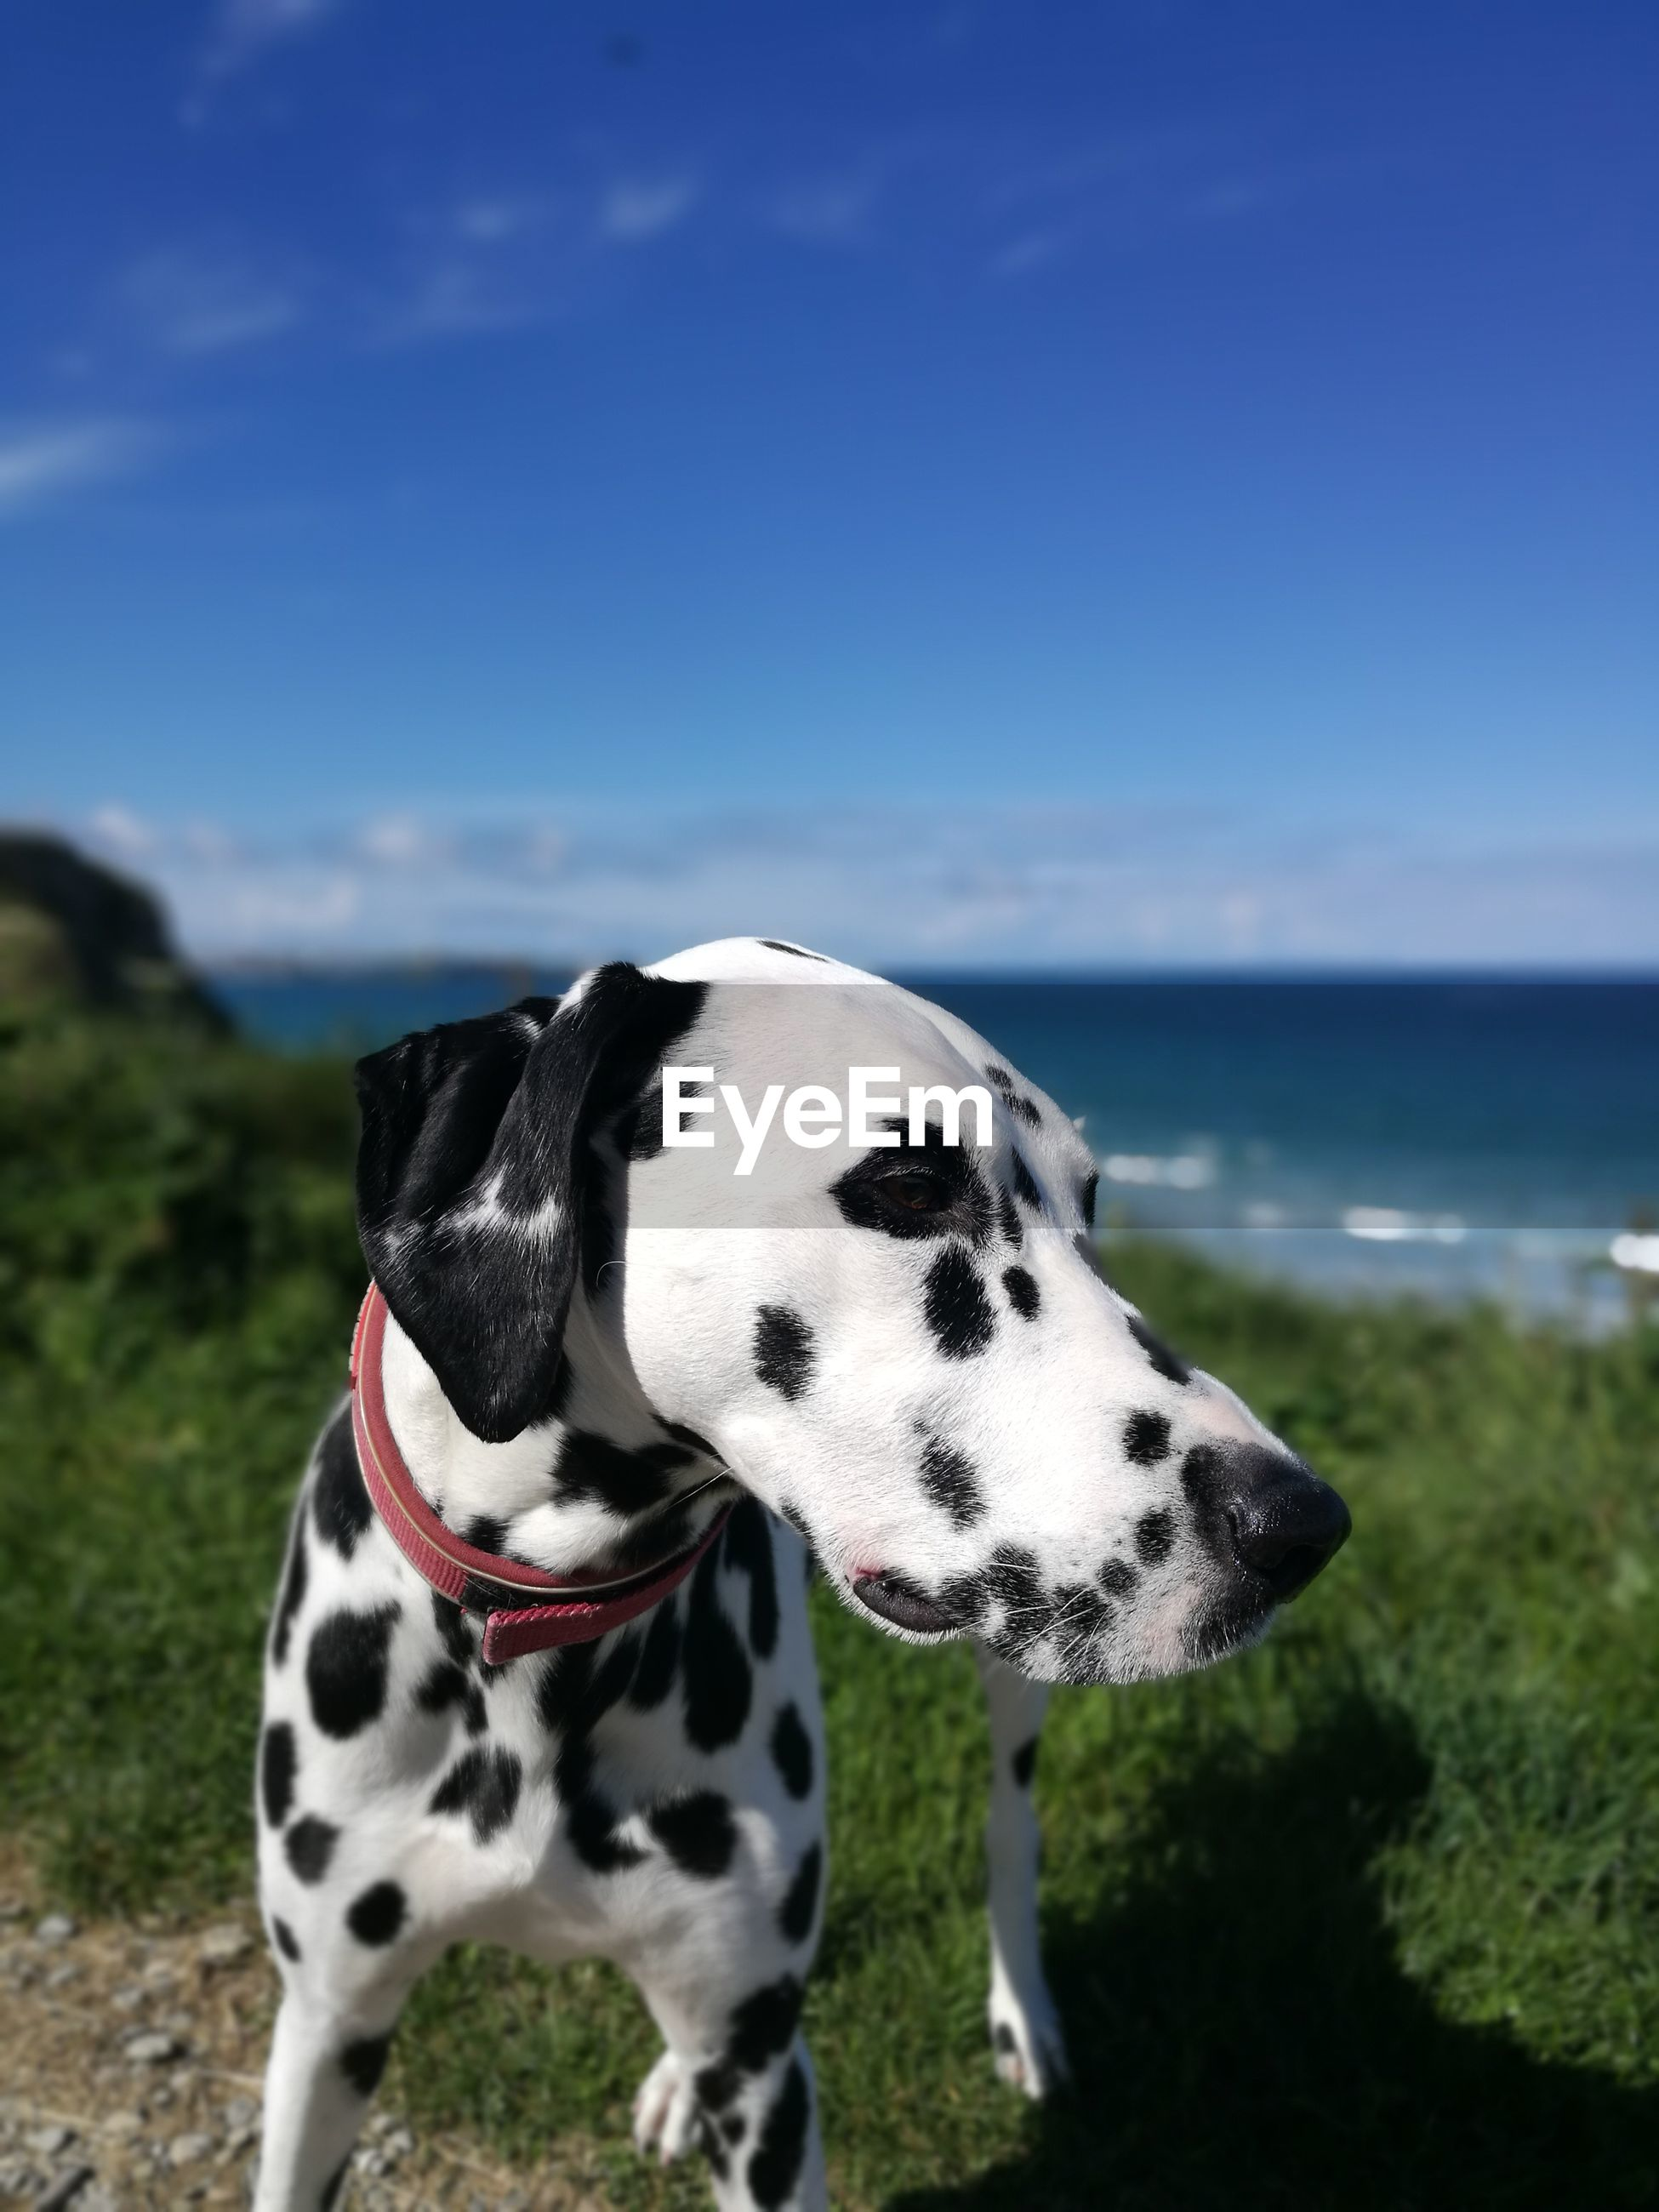 one animal, animal, animal themes, sky, mammal, dalmatian dog, canine, domestic animals, dog, vertebrate, pets, domestic, no people, nature, focus on foreground, day, sea, land, water, spotted, outdoors, animal head, purebred dog